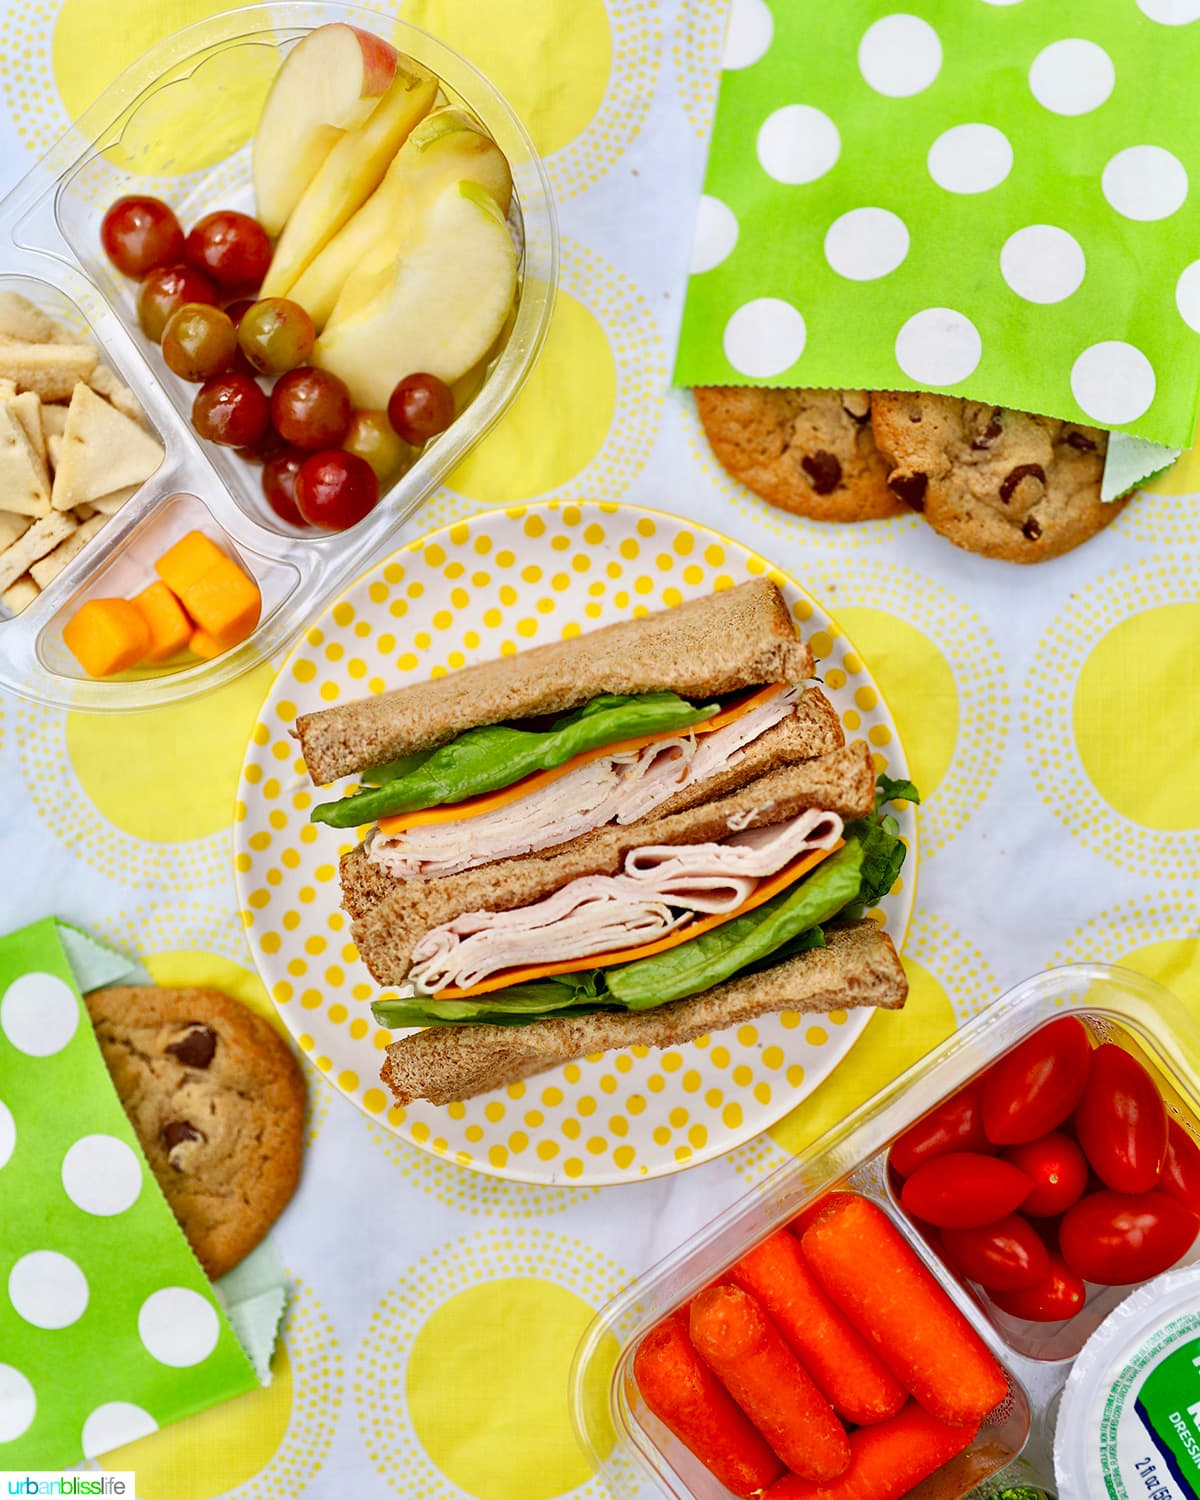 back to school lunches - sandwiches, cookies, cheeese, fruit, vegetables against yellow and white tablecloth